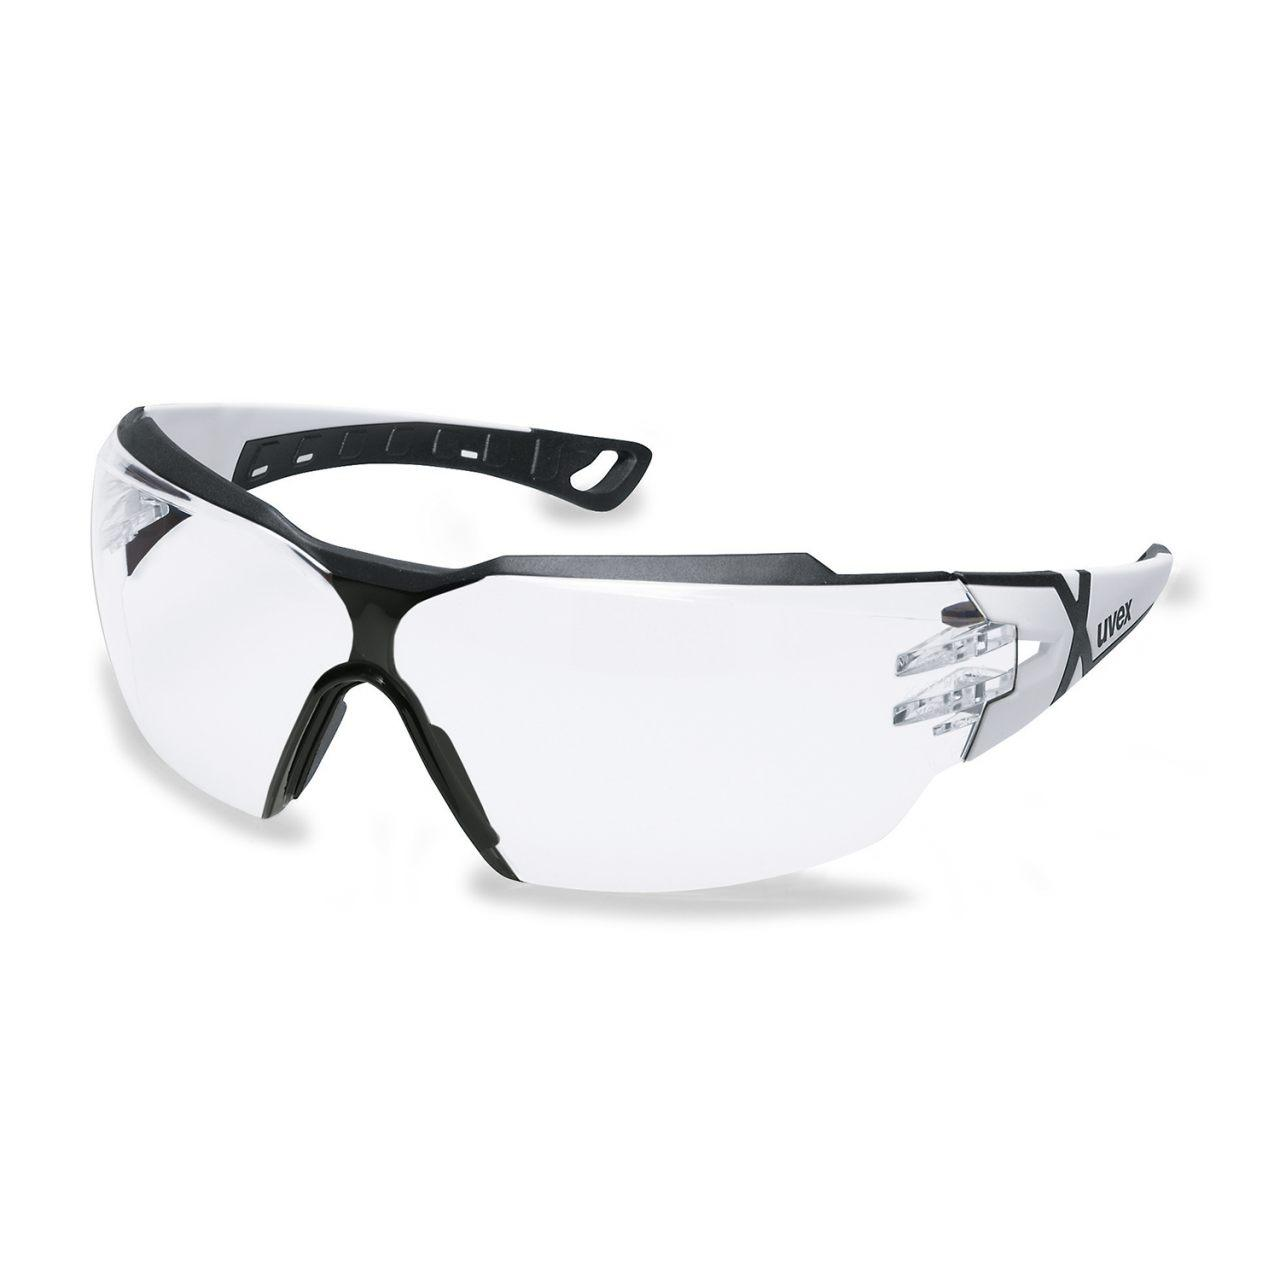 The New Range in Anti-Fog Glasses From uvex!